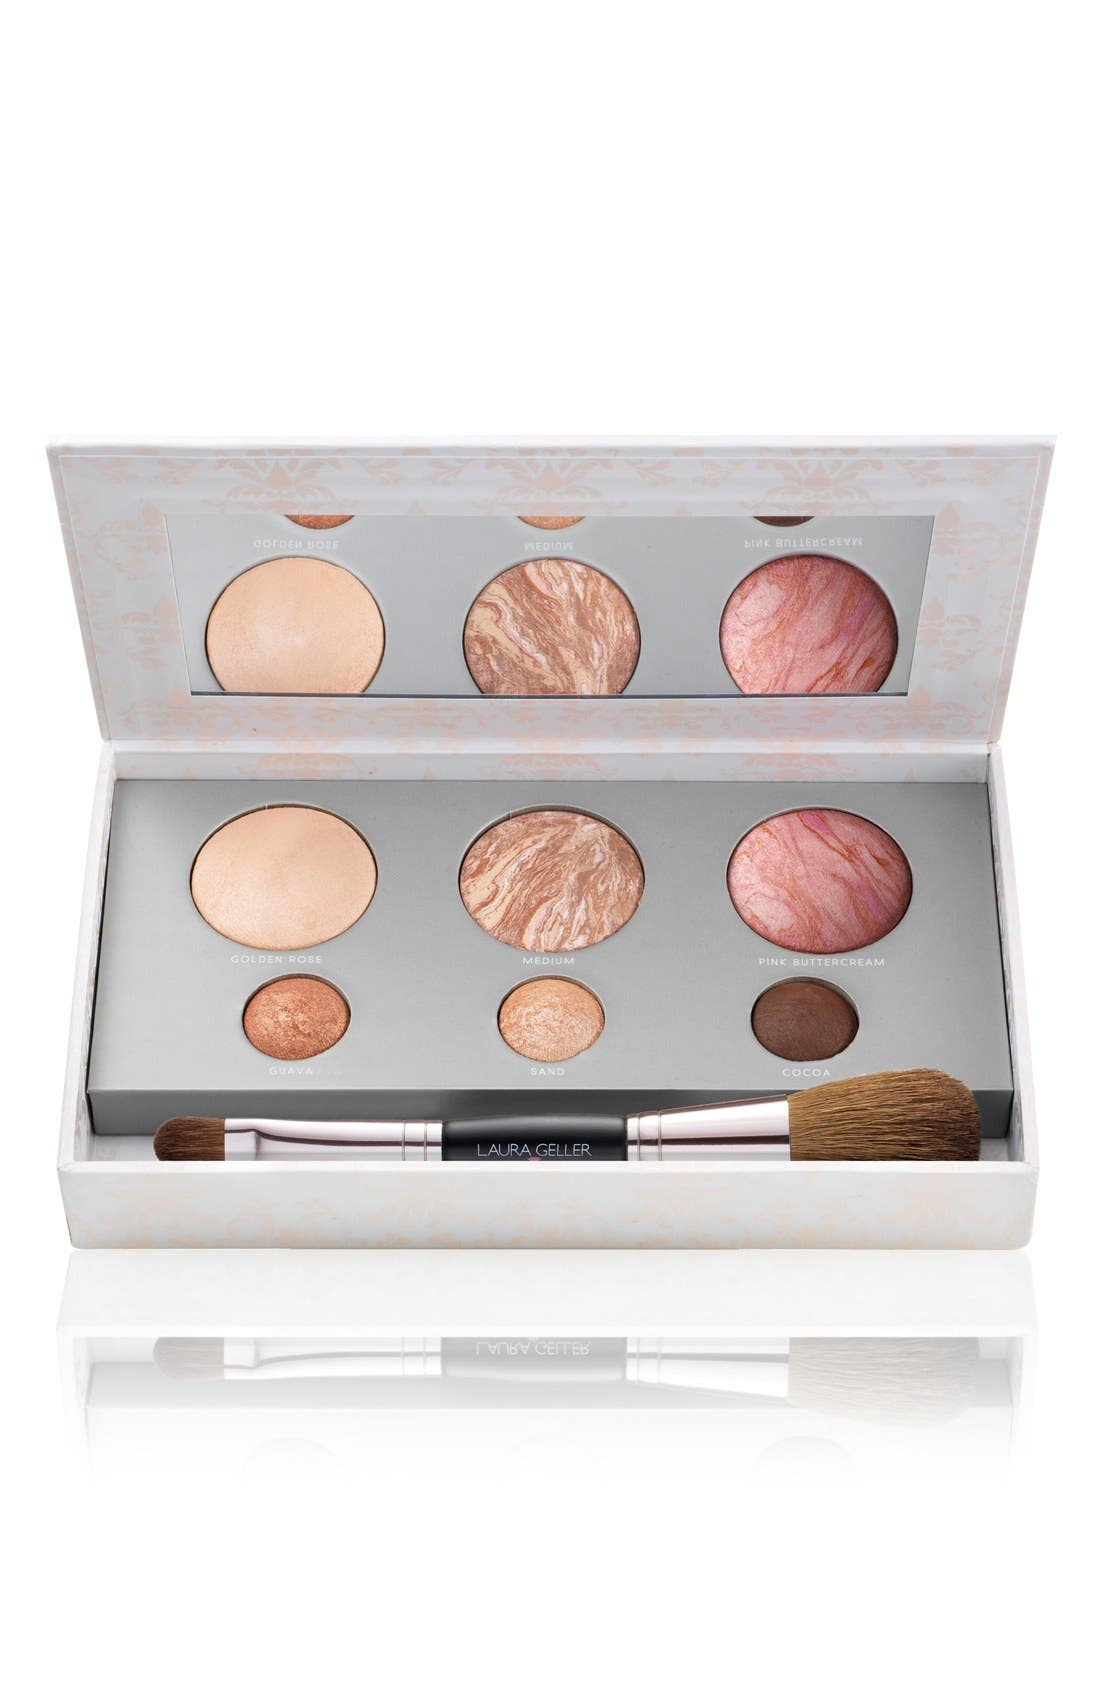 Laura Geller Beauty The Best of Baked Palette (Limited Edition) ($130 Value)